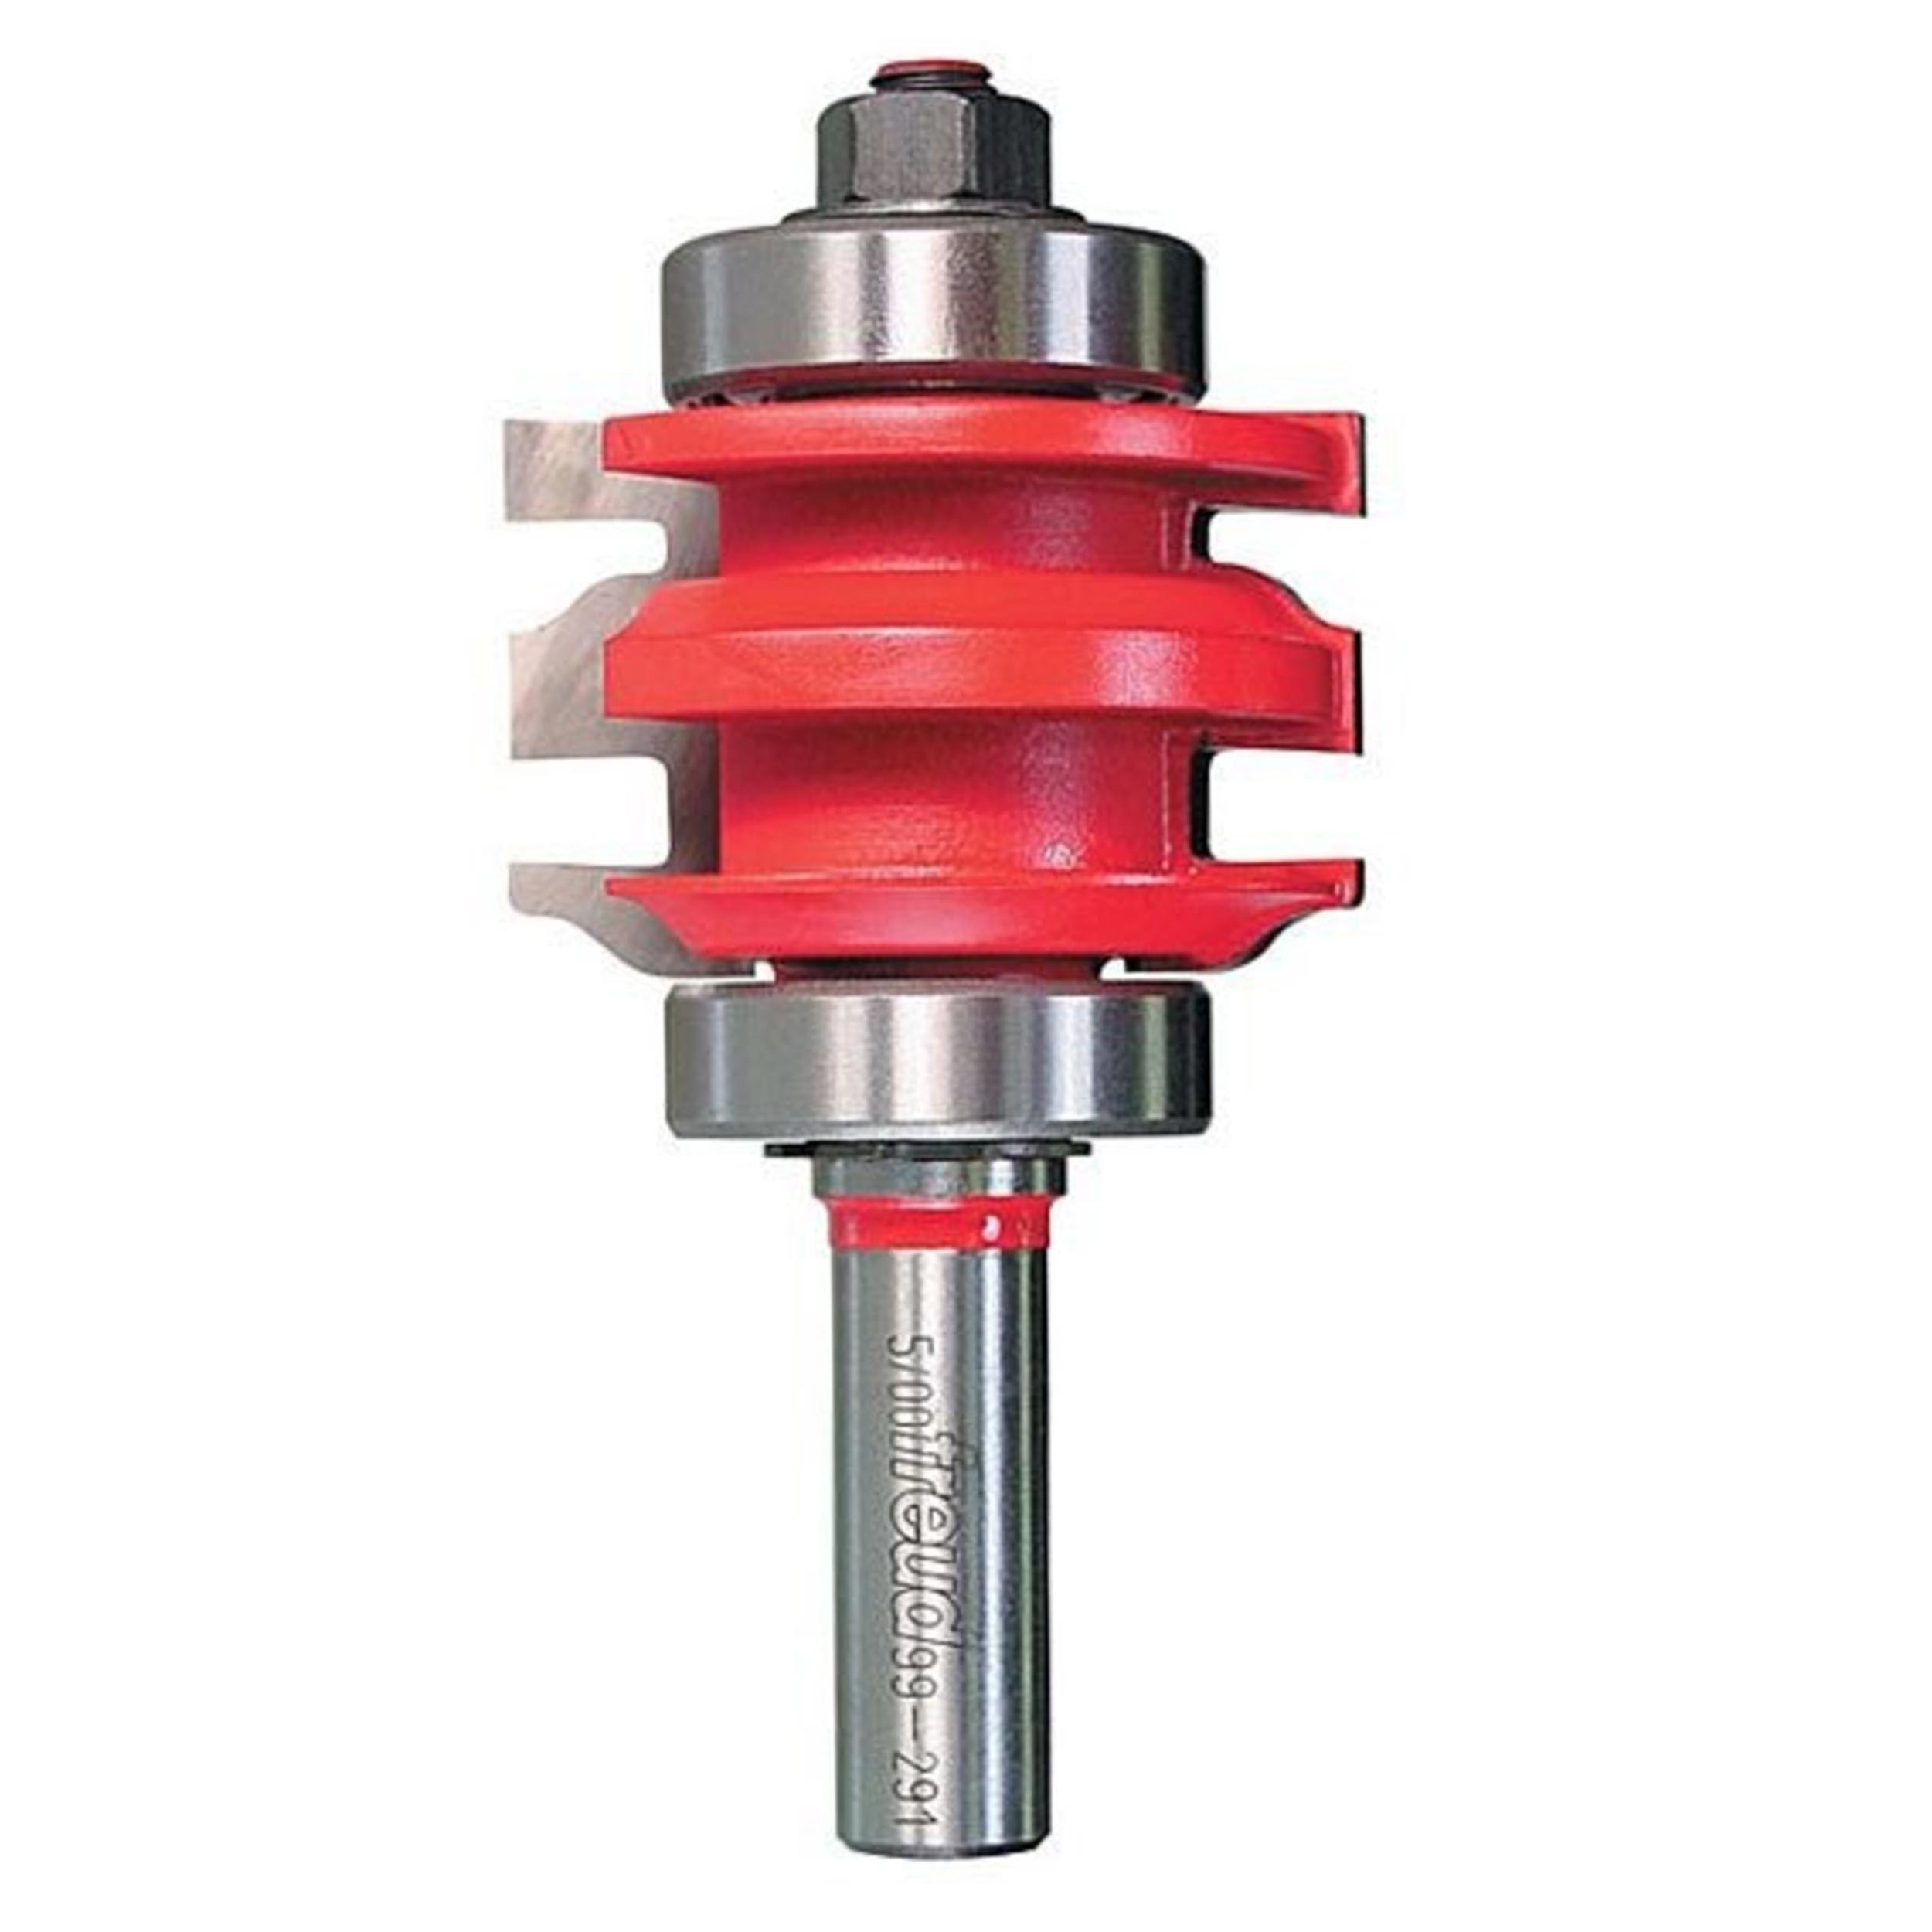 99-293 One Piece Stile And Rail Router Bit Classic Bead 1/2